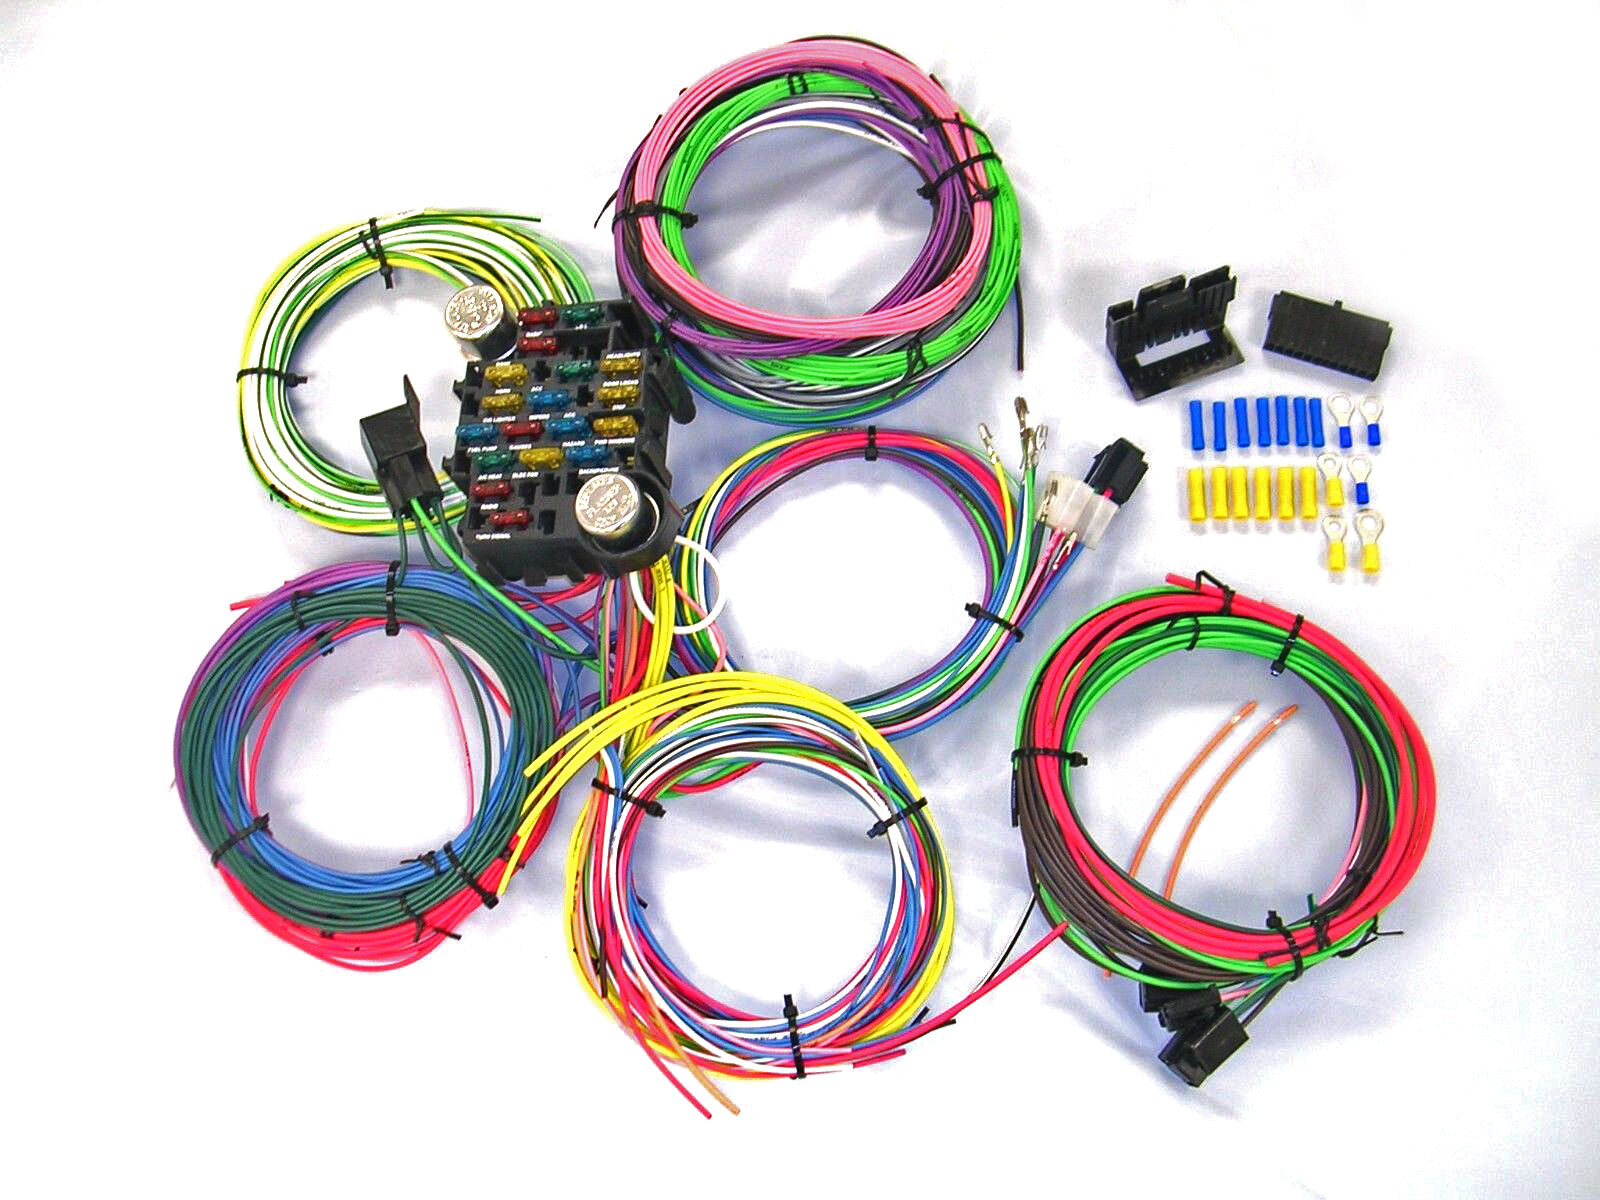 Gearhead 1967 1968 Pontiac Firebird Complete Wire Harness Wiring Kit USA 1  of 1Only 1 available ...